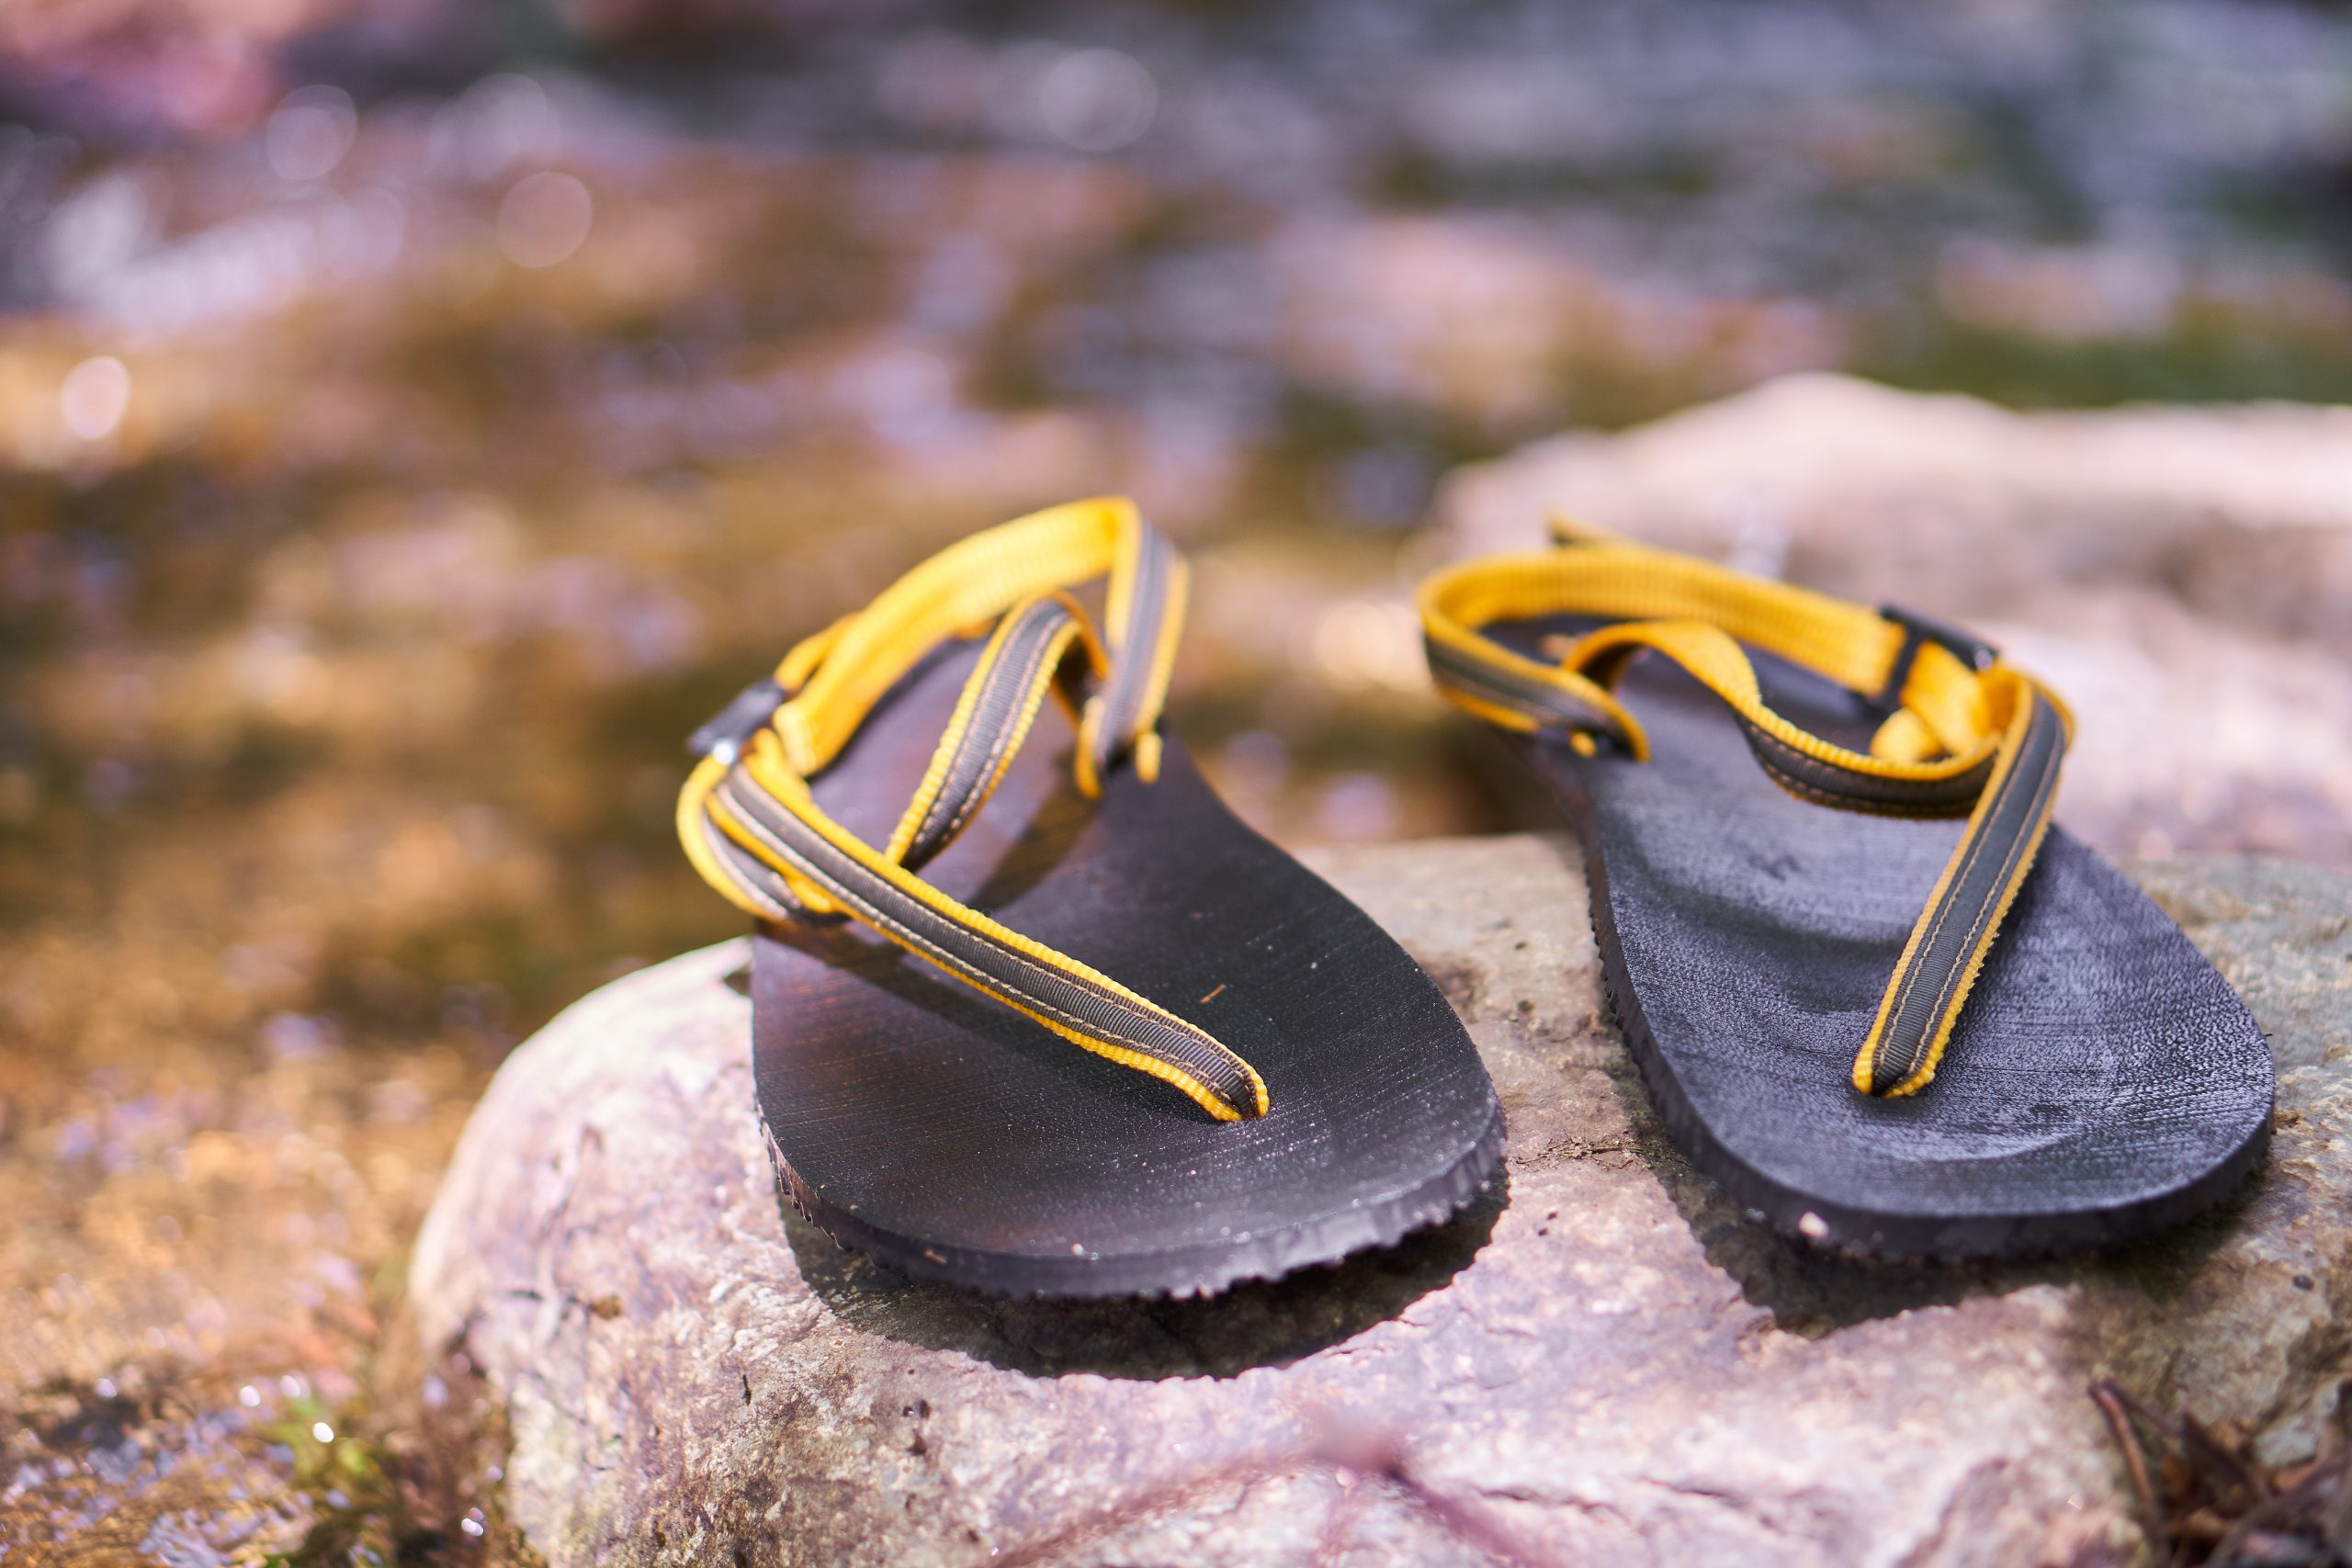 The Elemental is a frontrunner for best in show for 2017 sandal designs